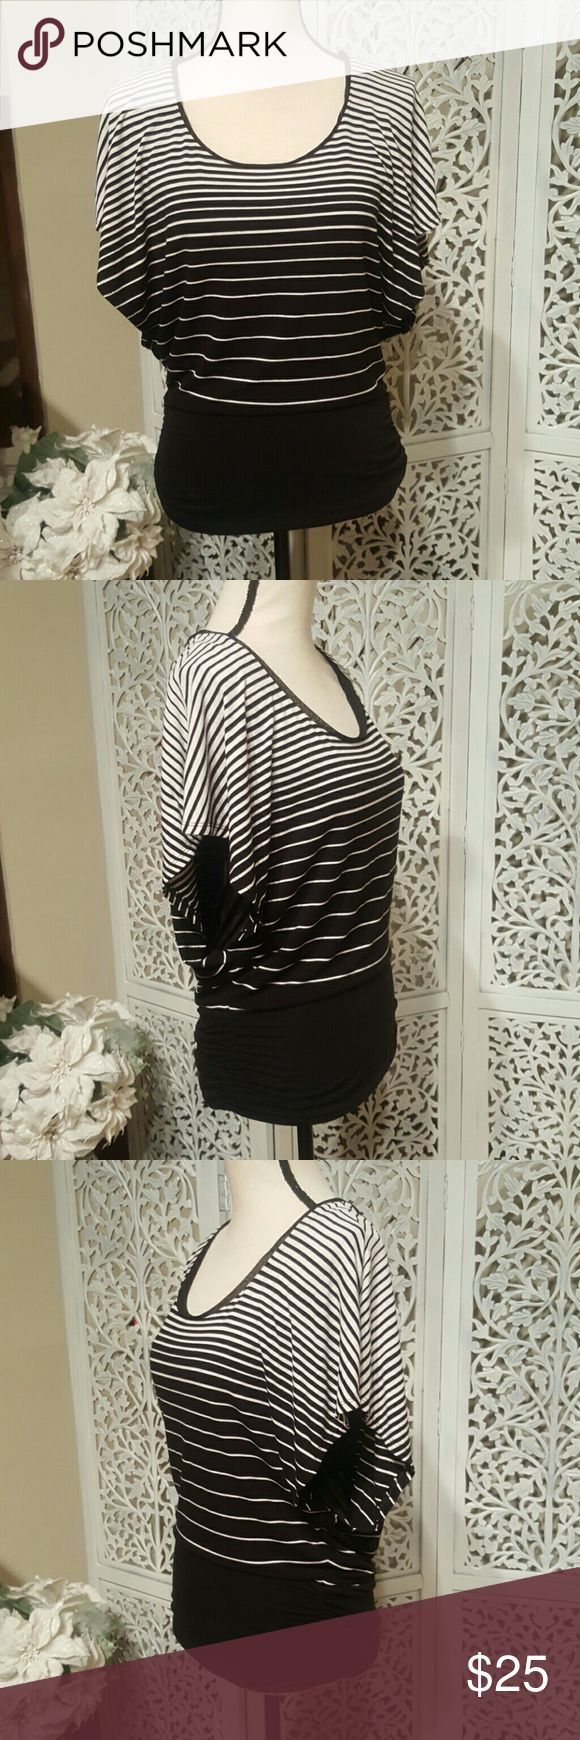 White House Black Market Striped Top Black and white striped top with batwing sleeves and banded bottom.  Very figure flattering.  Shell: 95% rayon, 5% spandex. Lining: 95% polyester, 5% spandex.  Please feel free to make an offer through the offer button below. White House Black Market Tops